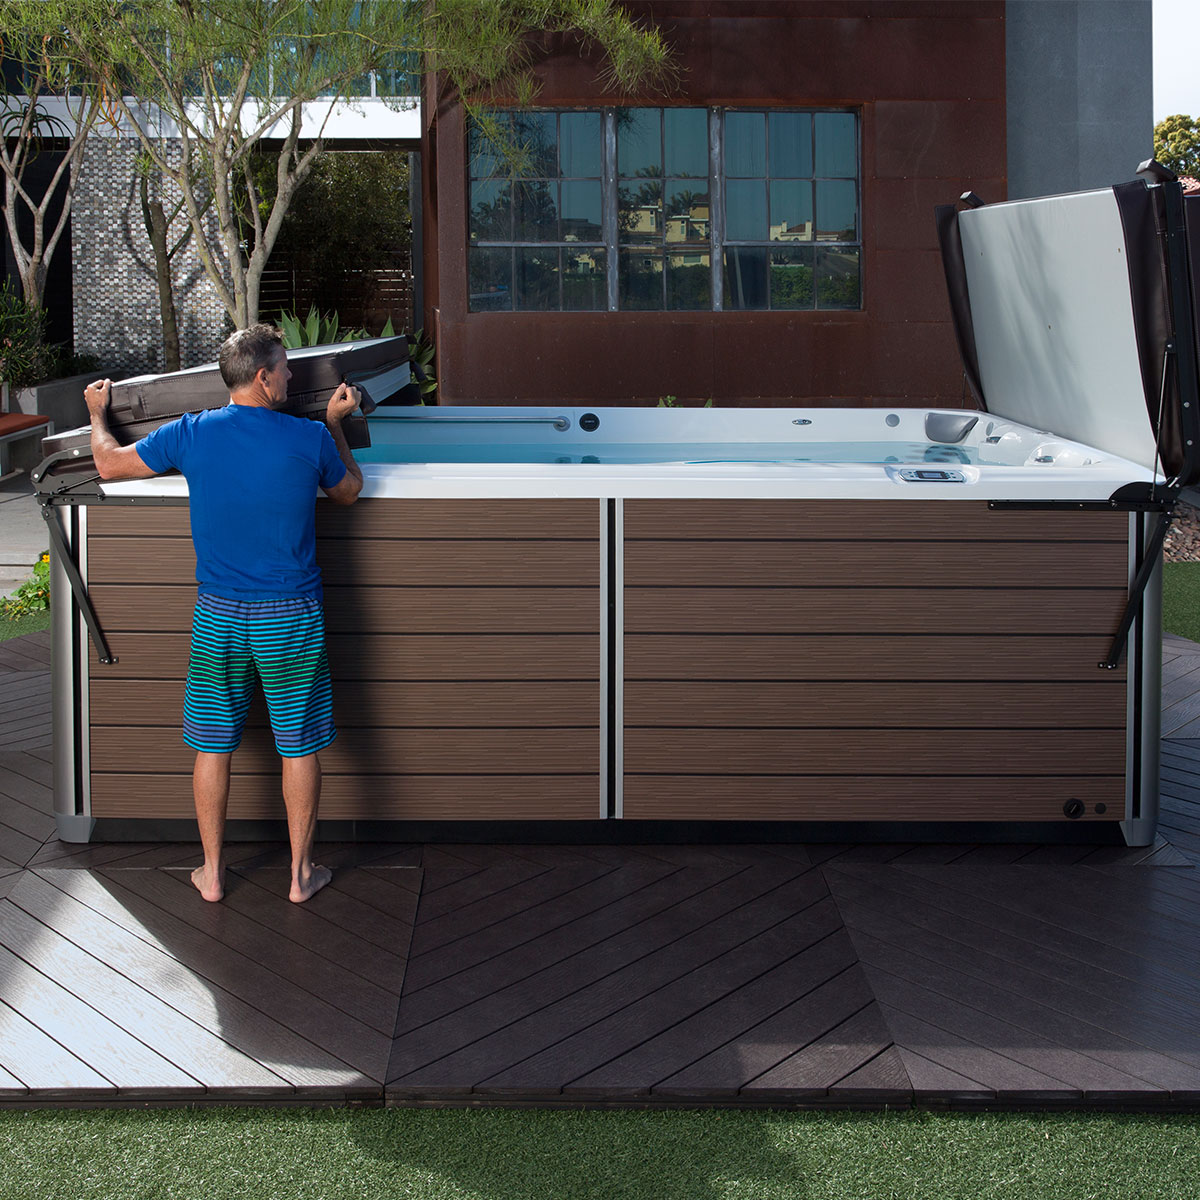 Jacuzzi Endless Pool Watkins Cover Lifter Arizona Hot Tub Company Hot Tubs